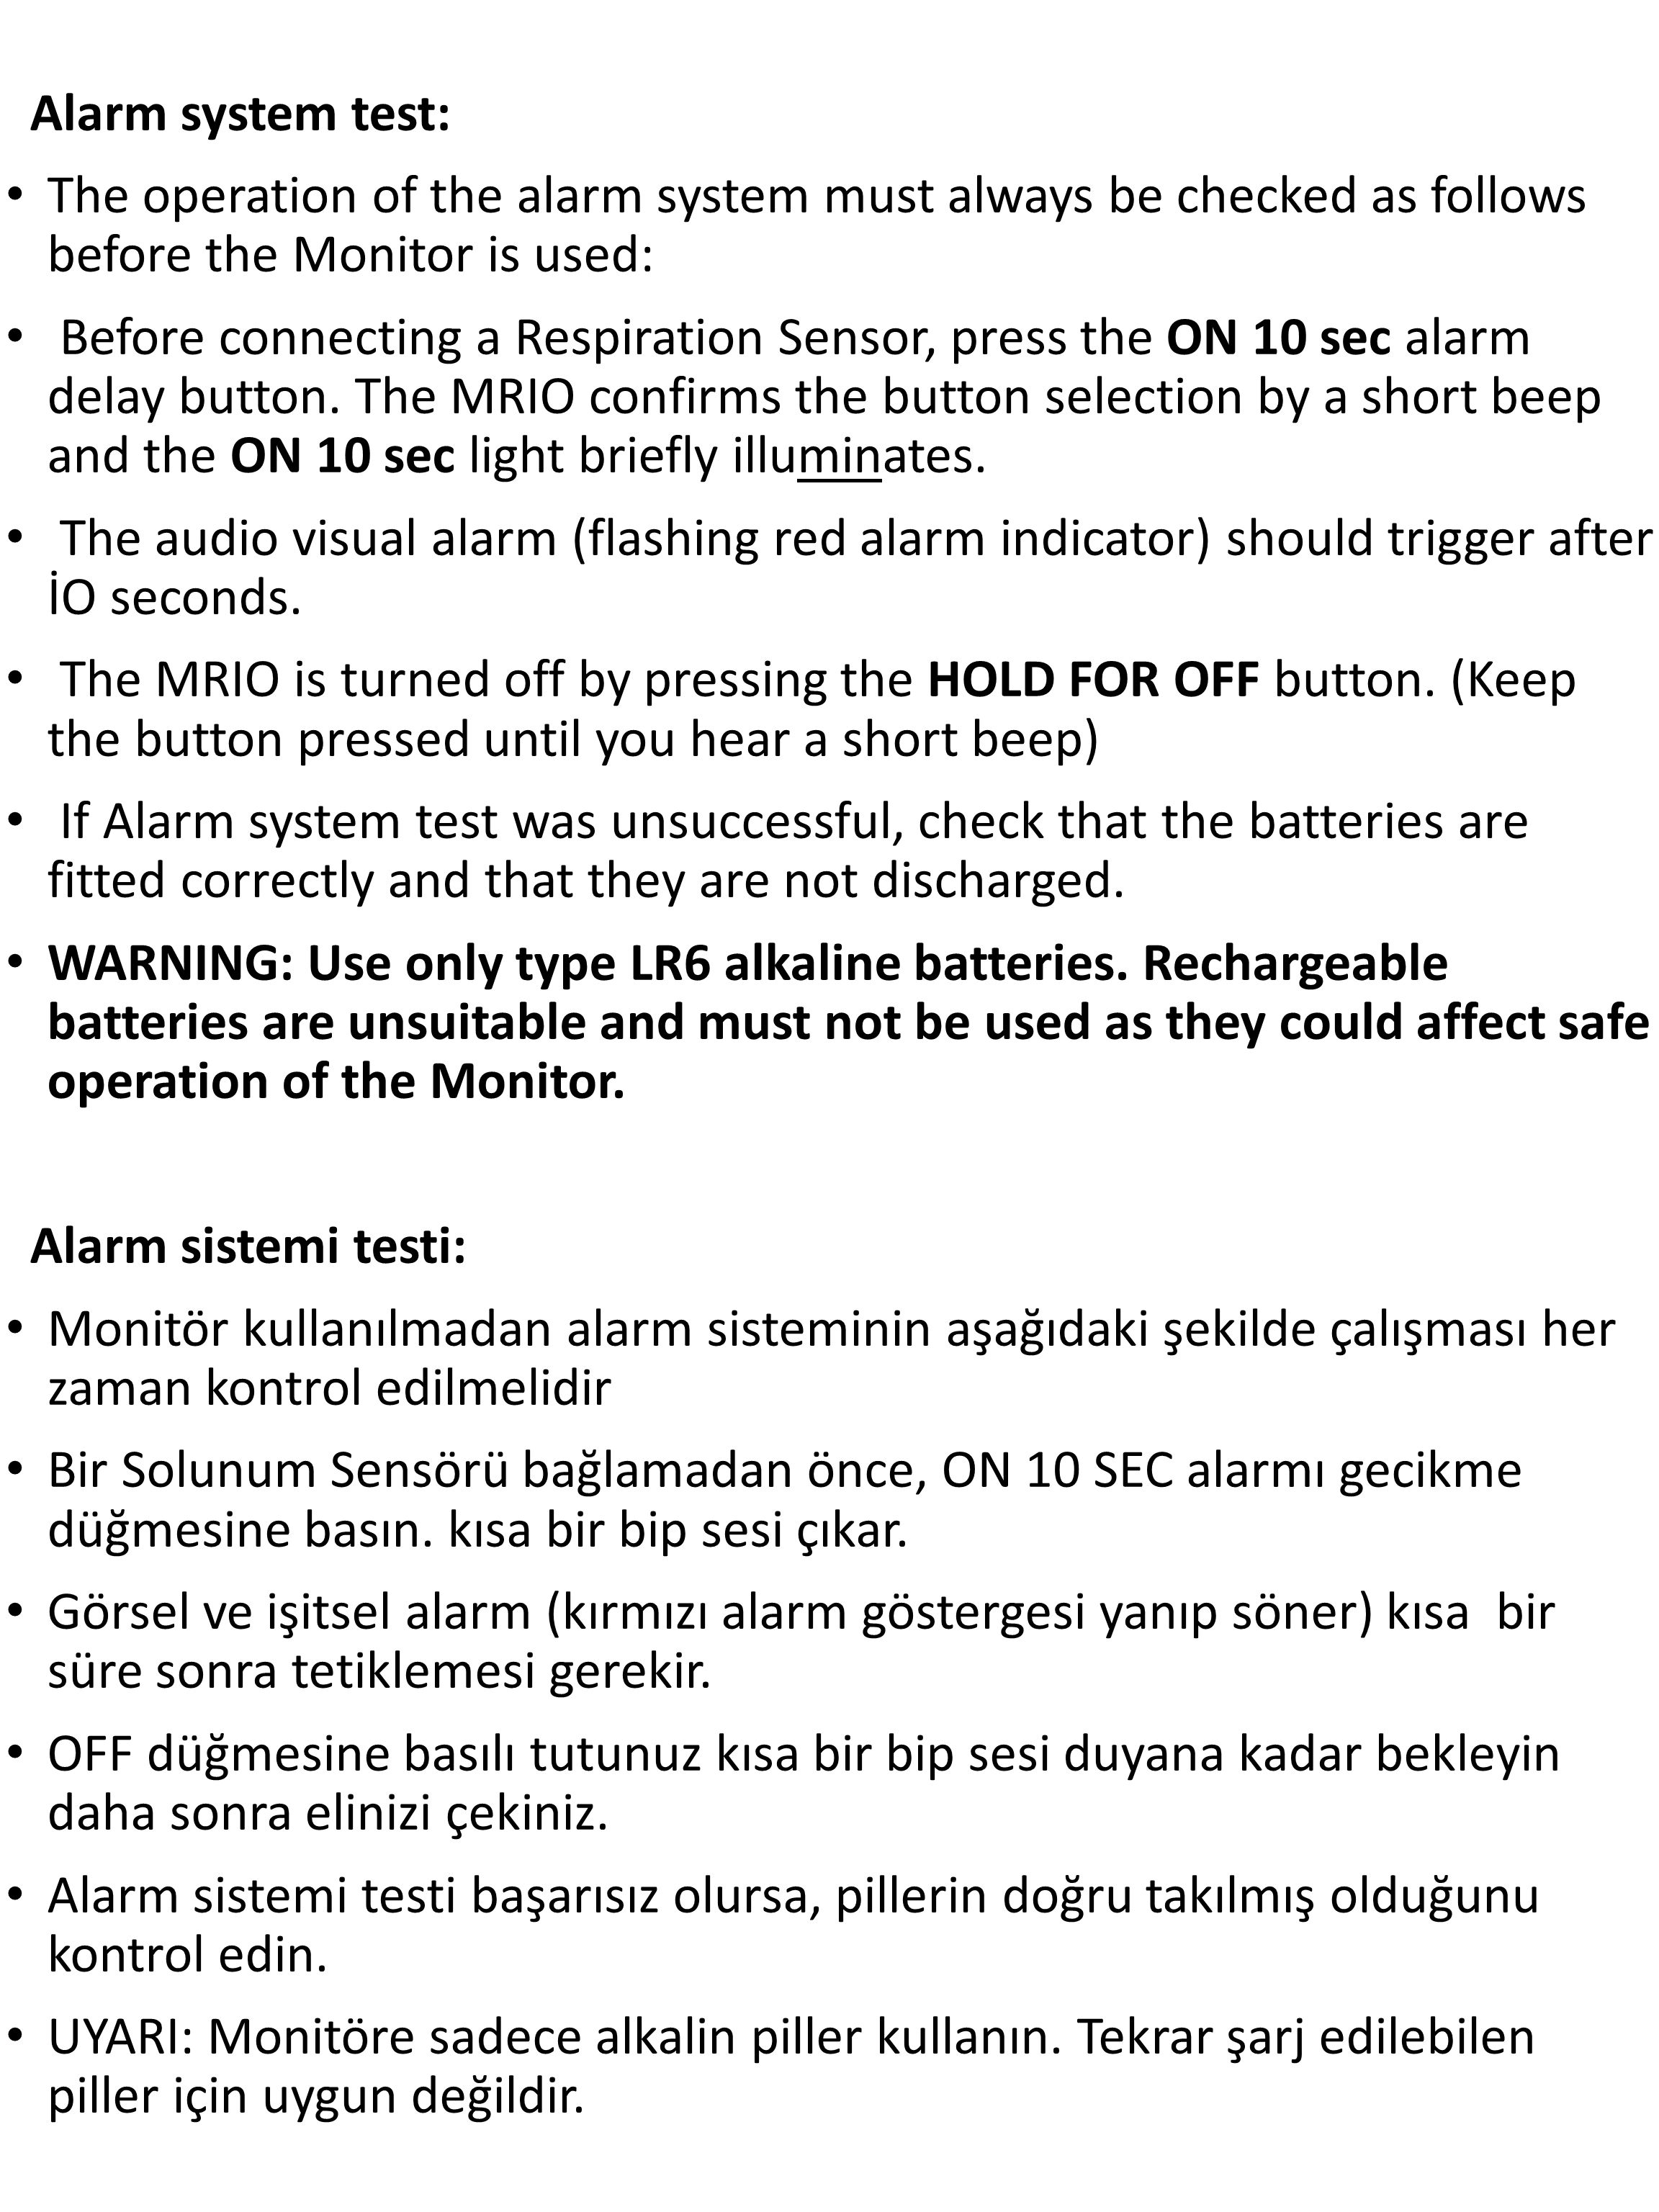 Alarm system test: The operation of the alarm system must always be checked as follows before the Monitor is used: